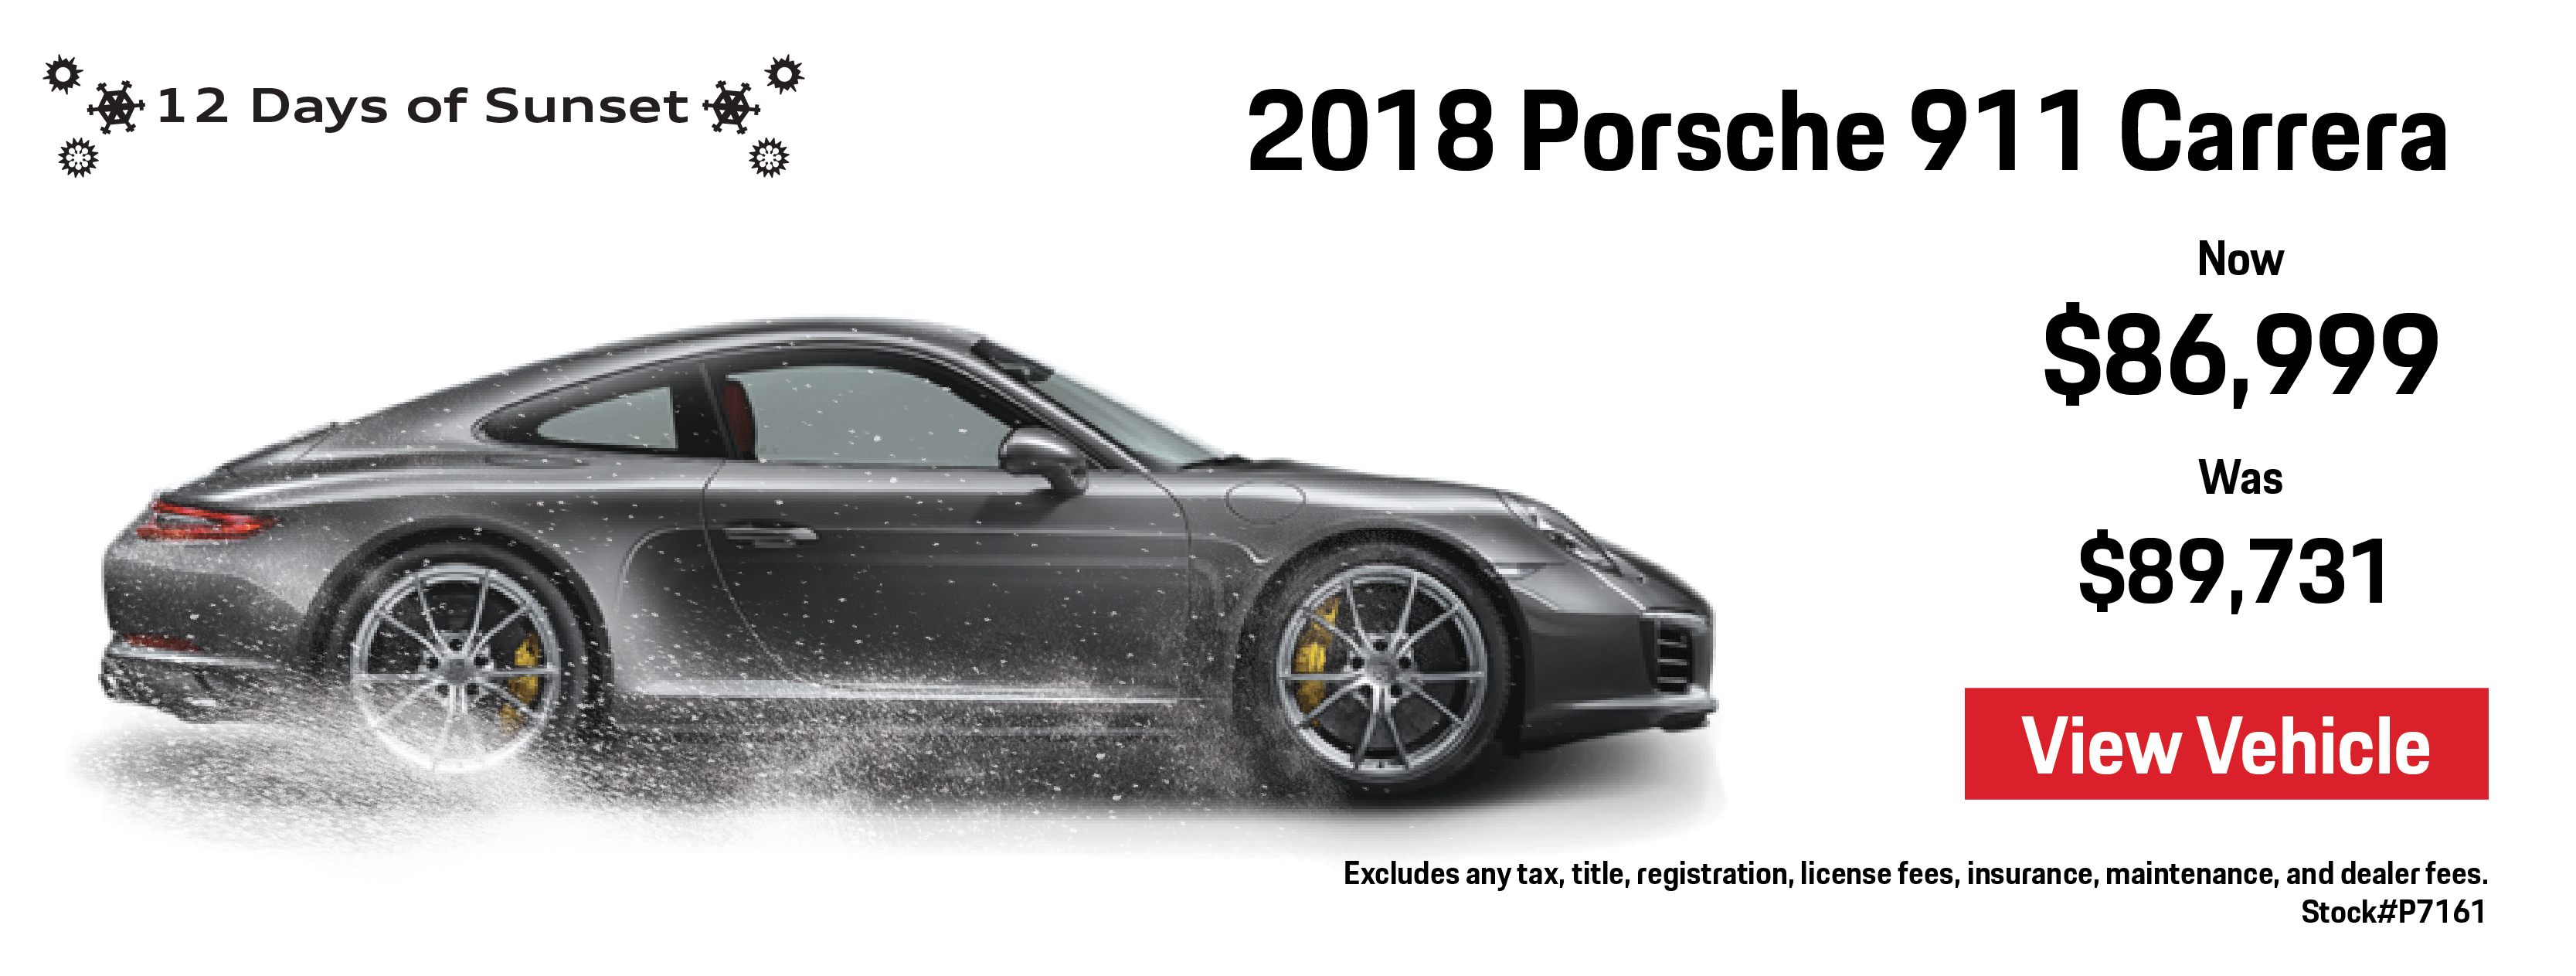 12 Days of Sunset   Day 9   2018 911 Carrera Savings   Now $86,999 Was $89,731   View Vehicle